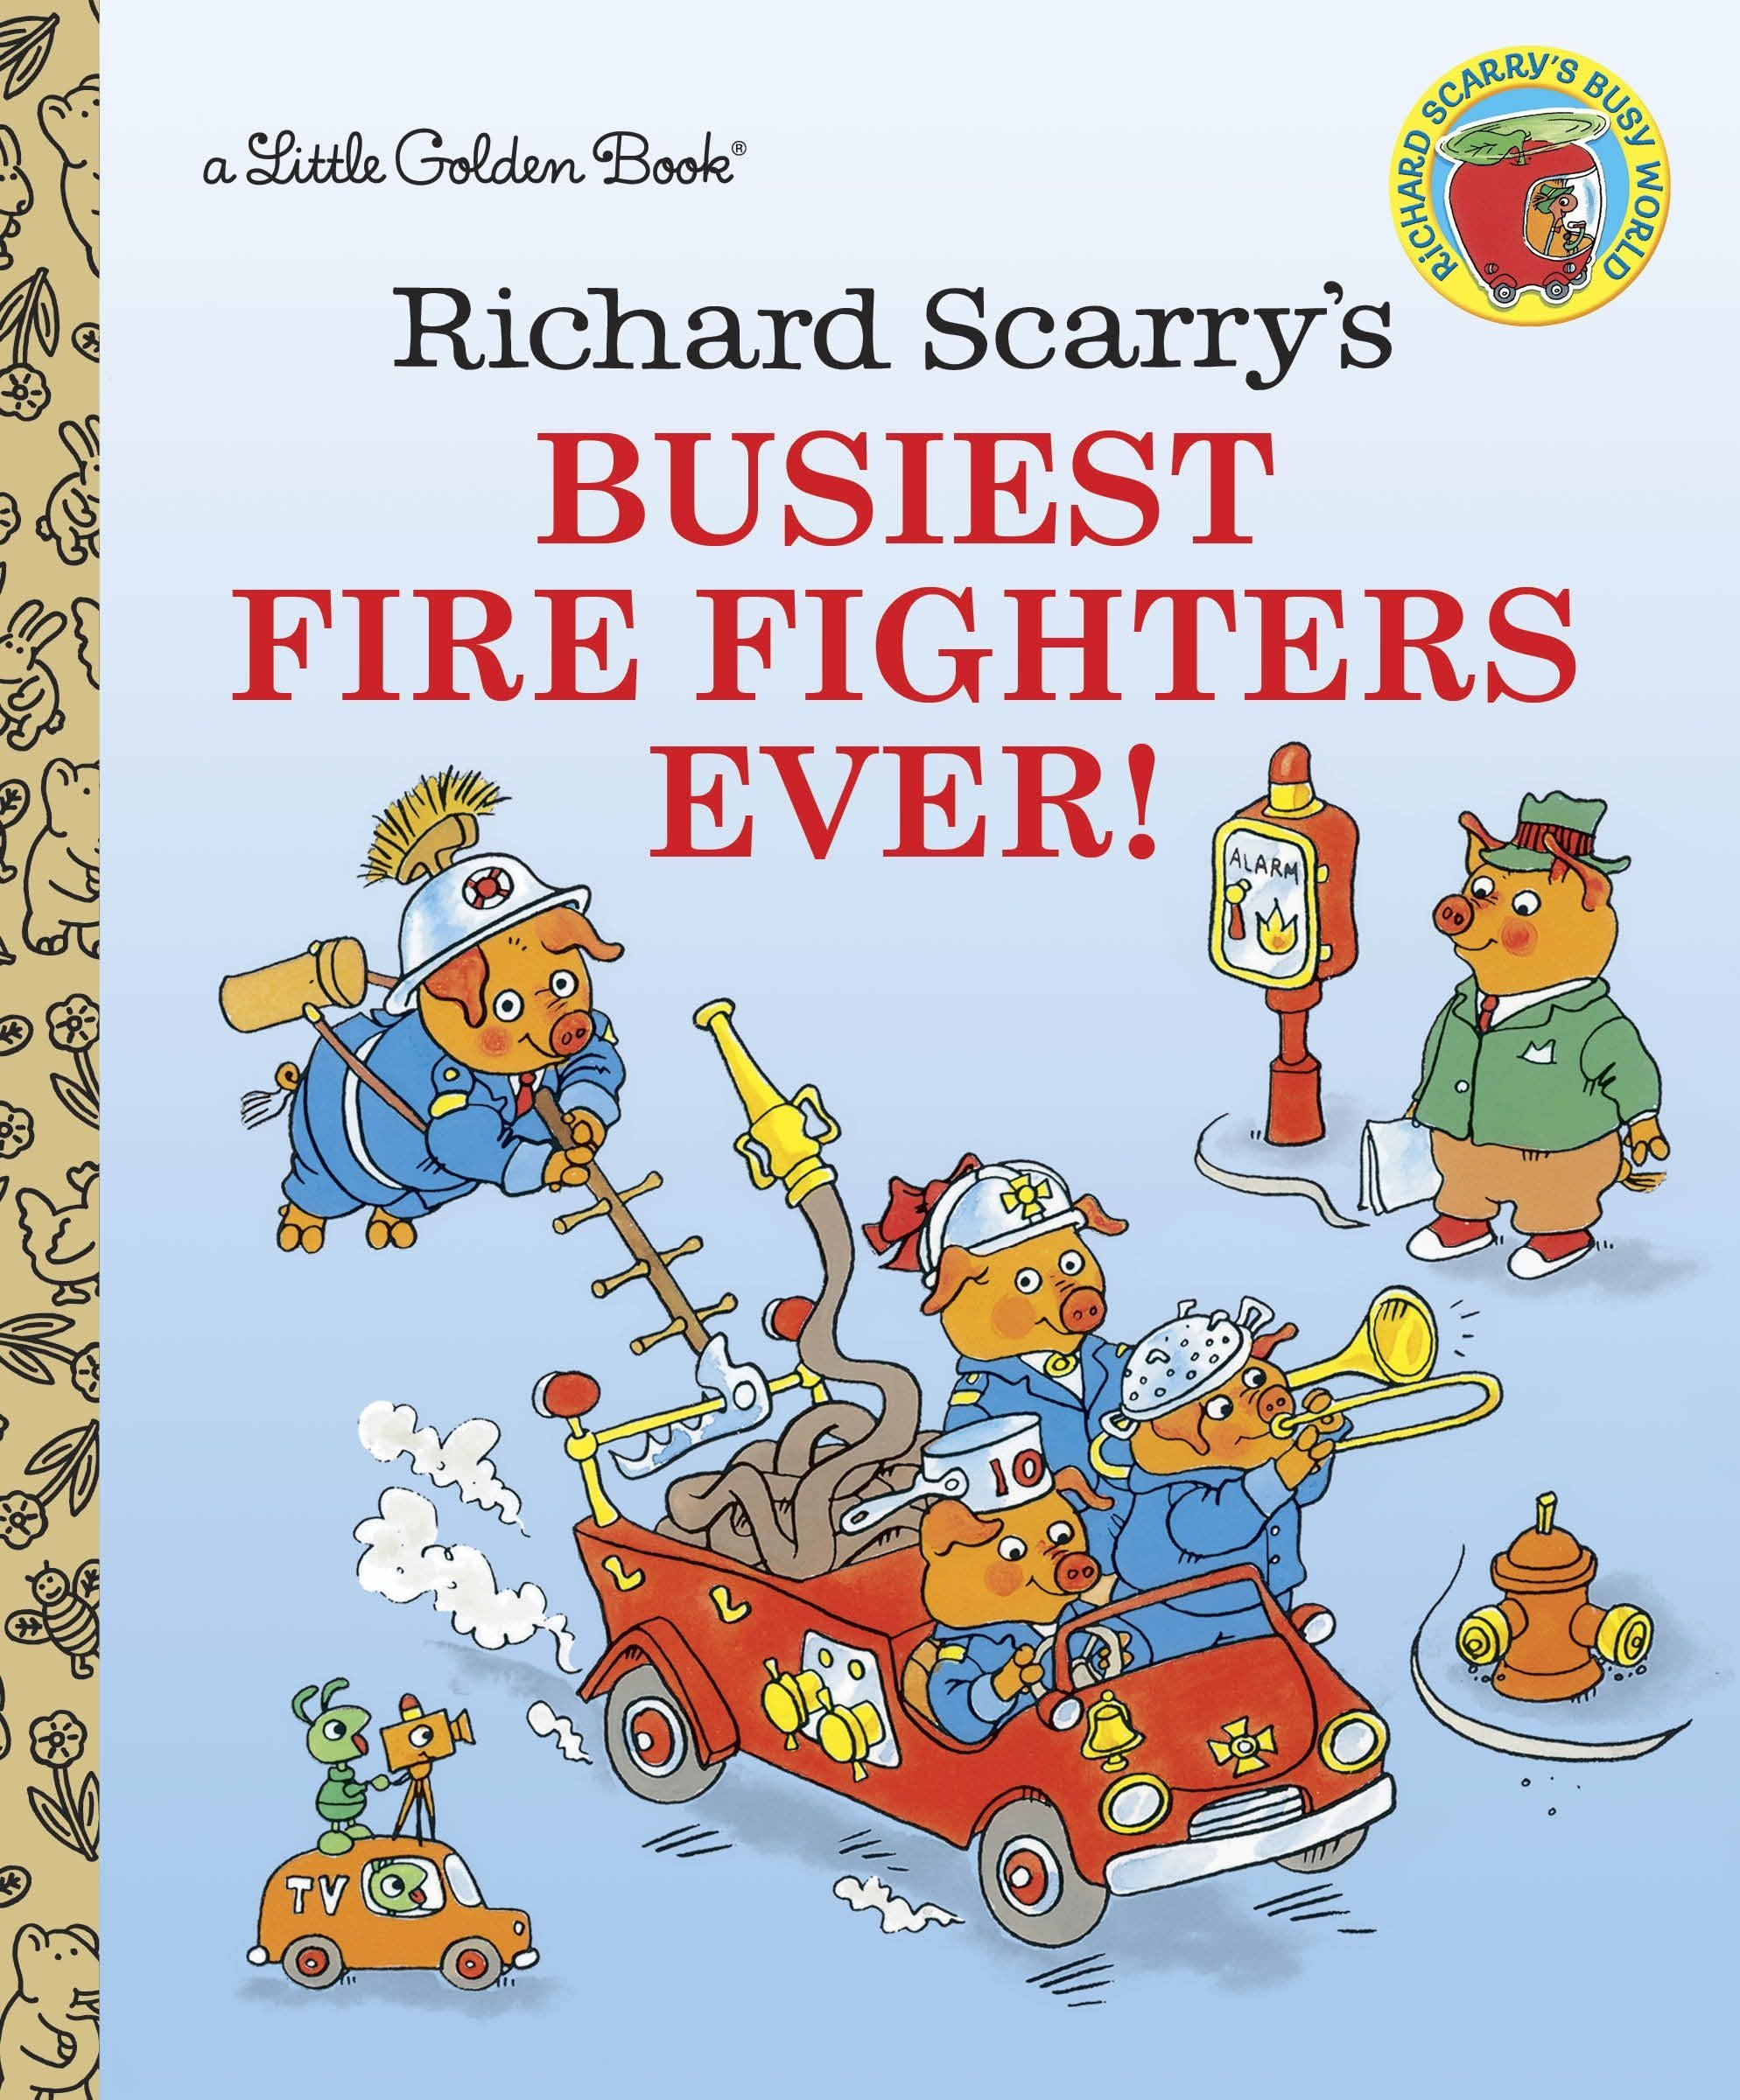 Richard Scarry's Busiest Firefighters Ever (Little Golden